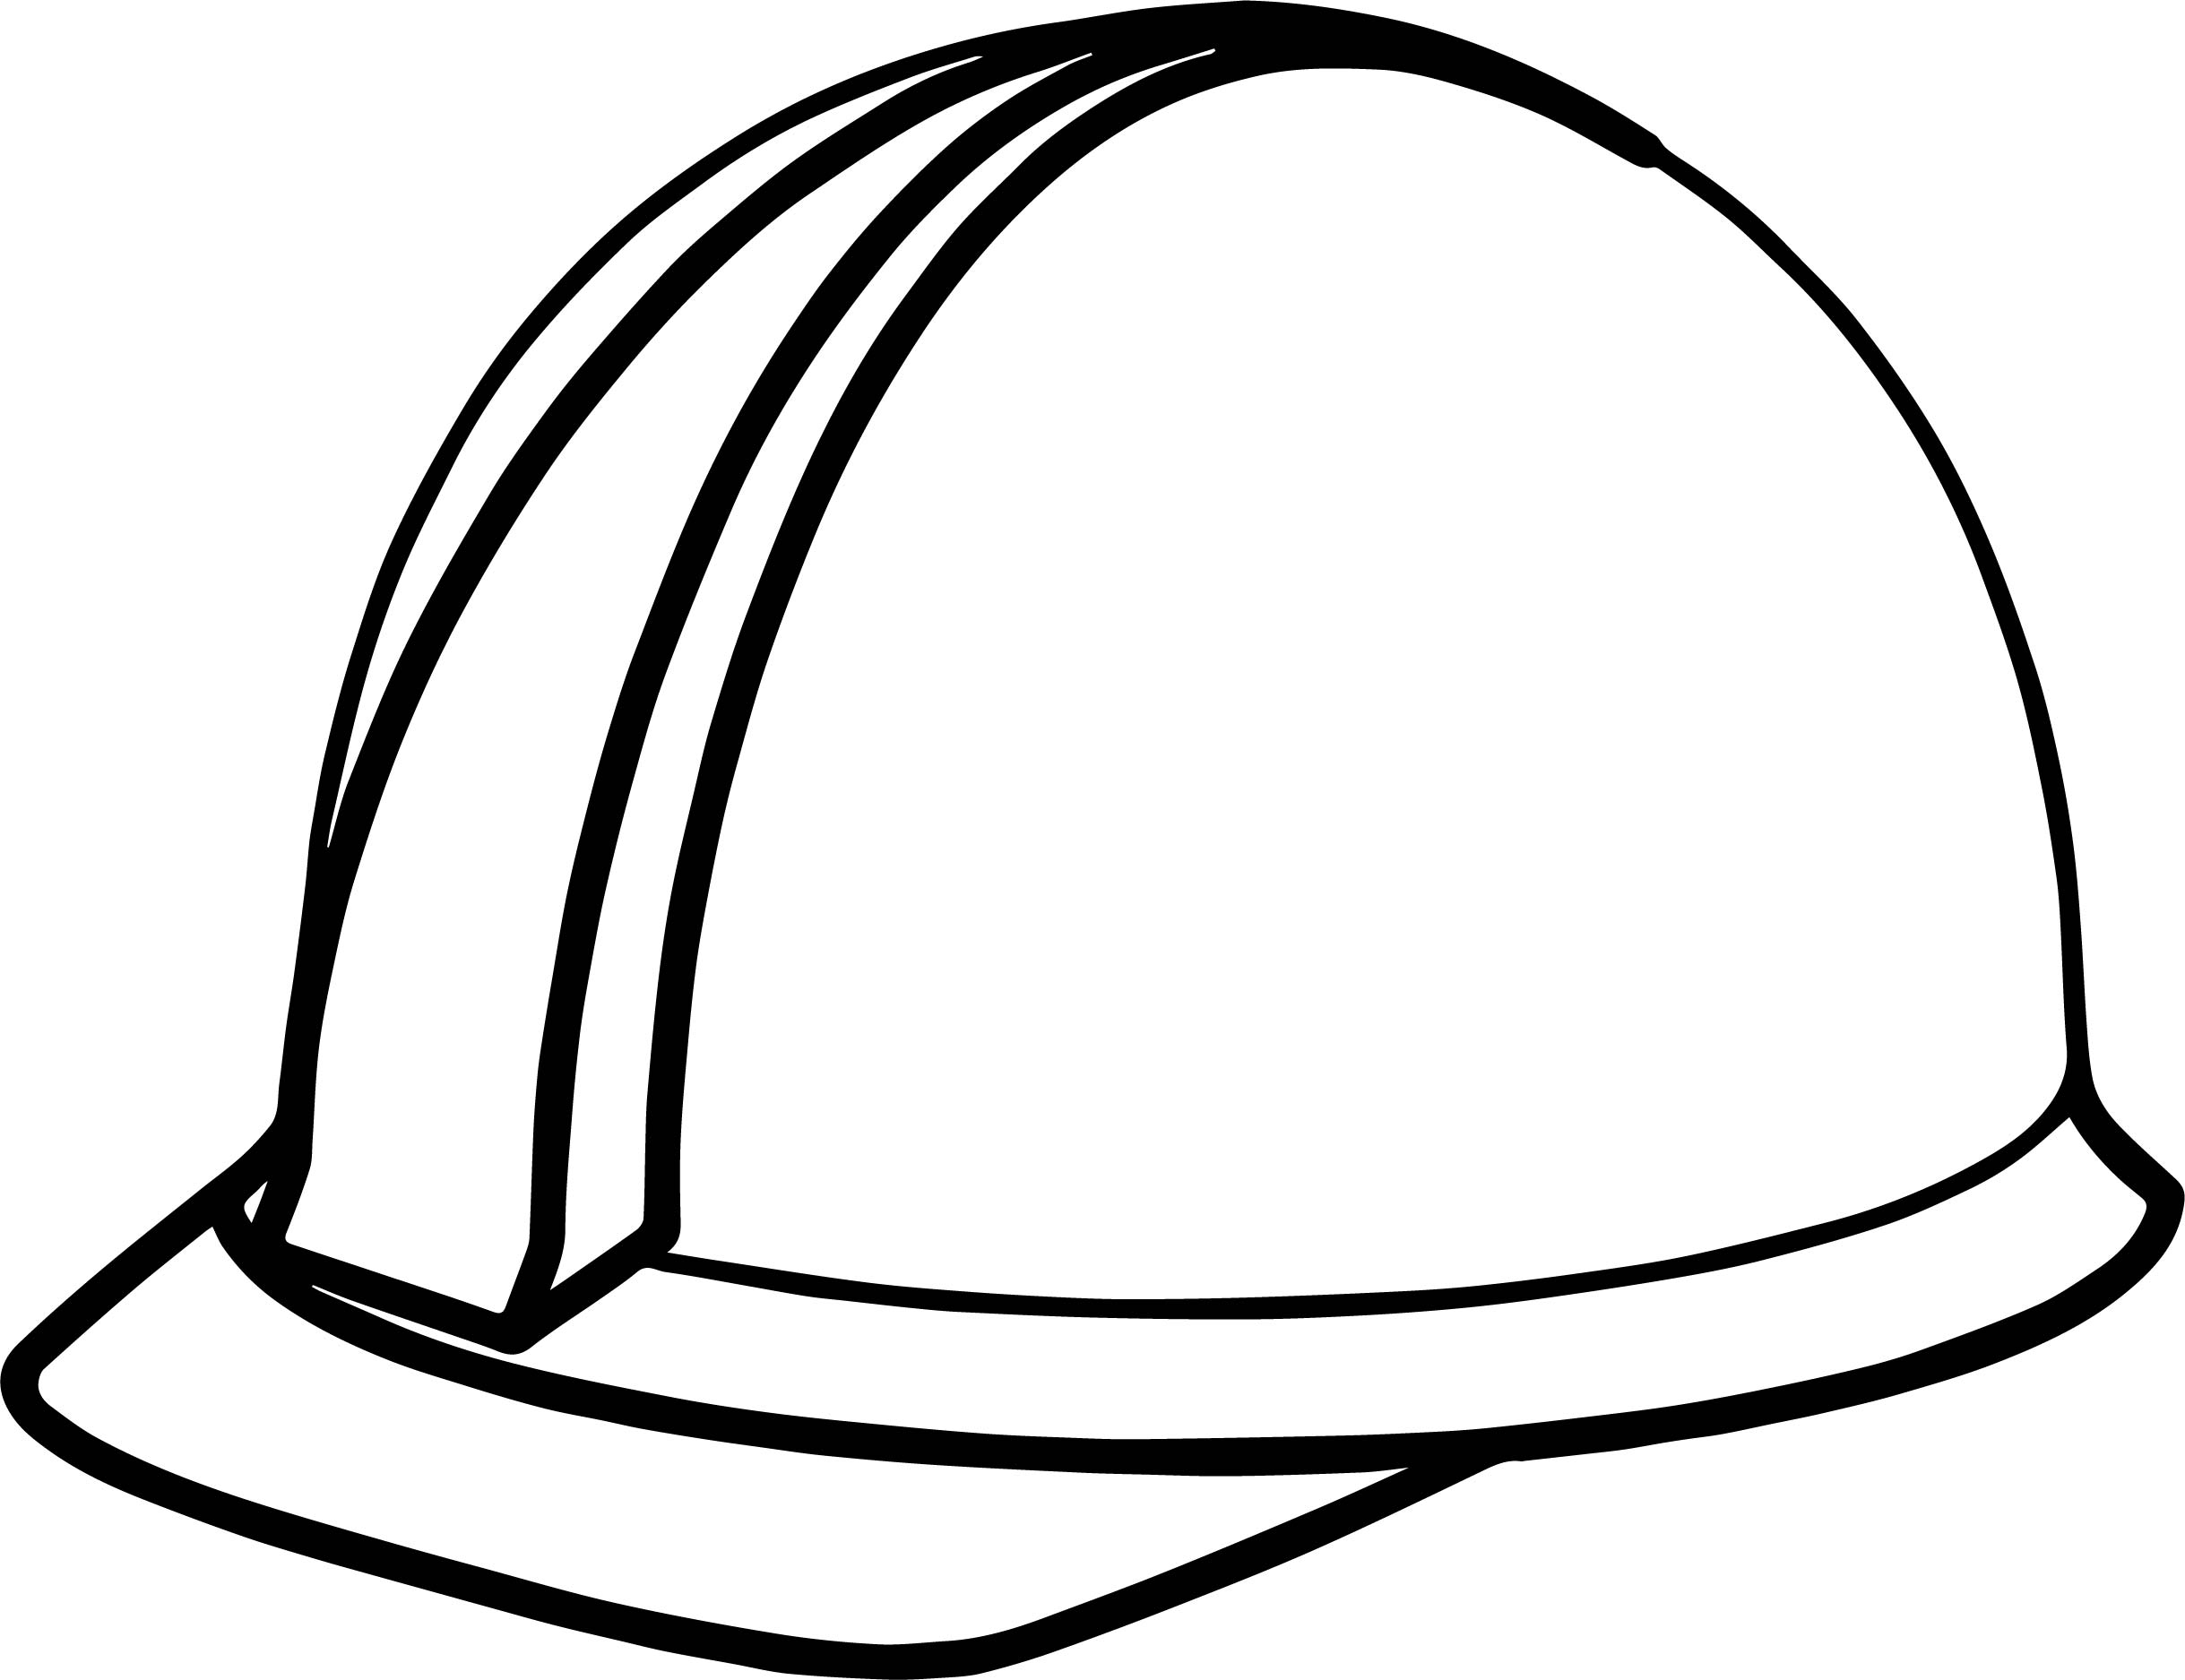 Computer Engineer Helmet Coloring Page Wecoloringpage